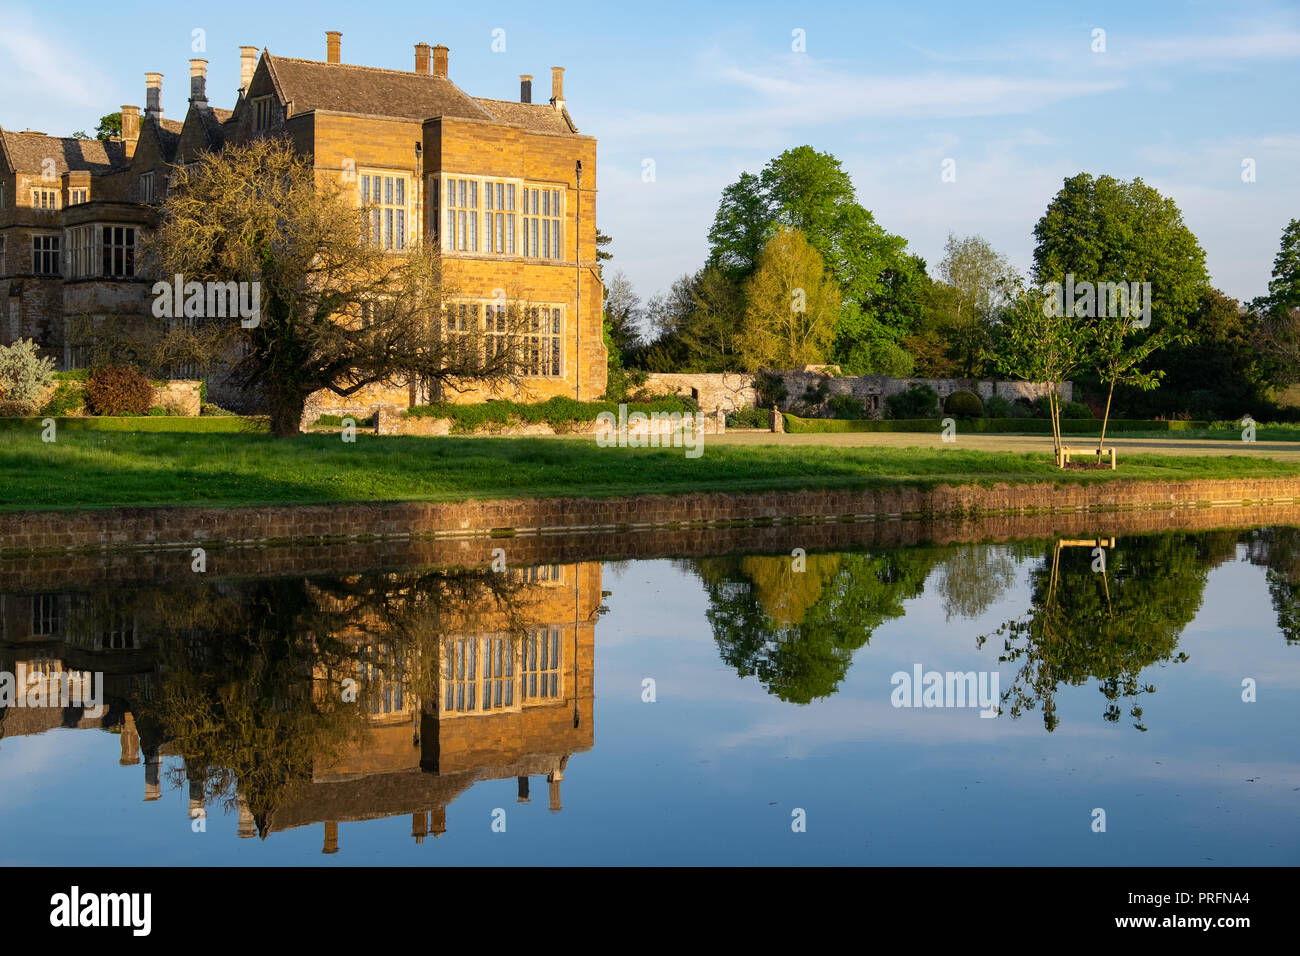 Broughton Castle, near Banbury, home of the Fiennes family in golden evening light with reflections in the still water of the moat. Open to the public Stock Photo